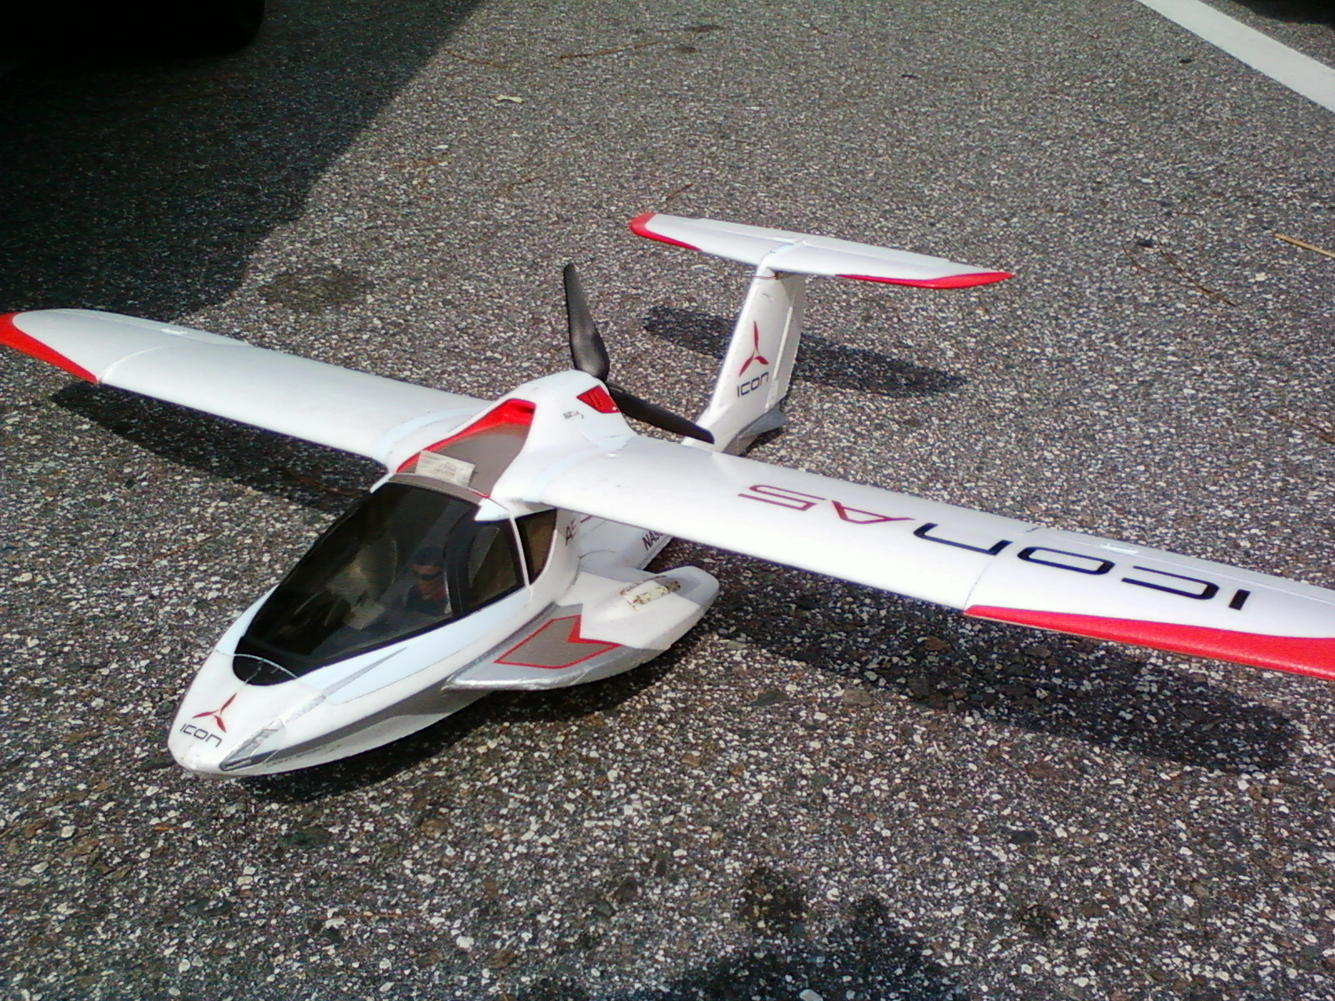 This is my Parkzone Icon A5. I have been having an absolute blast flying it off pavement and pond. On the water it is really a flying wave runner.